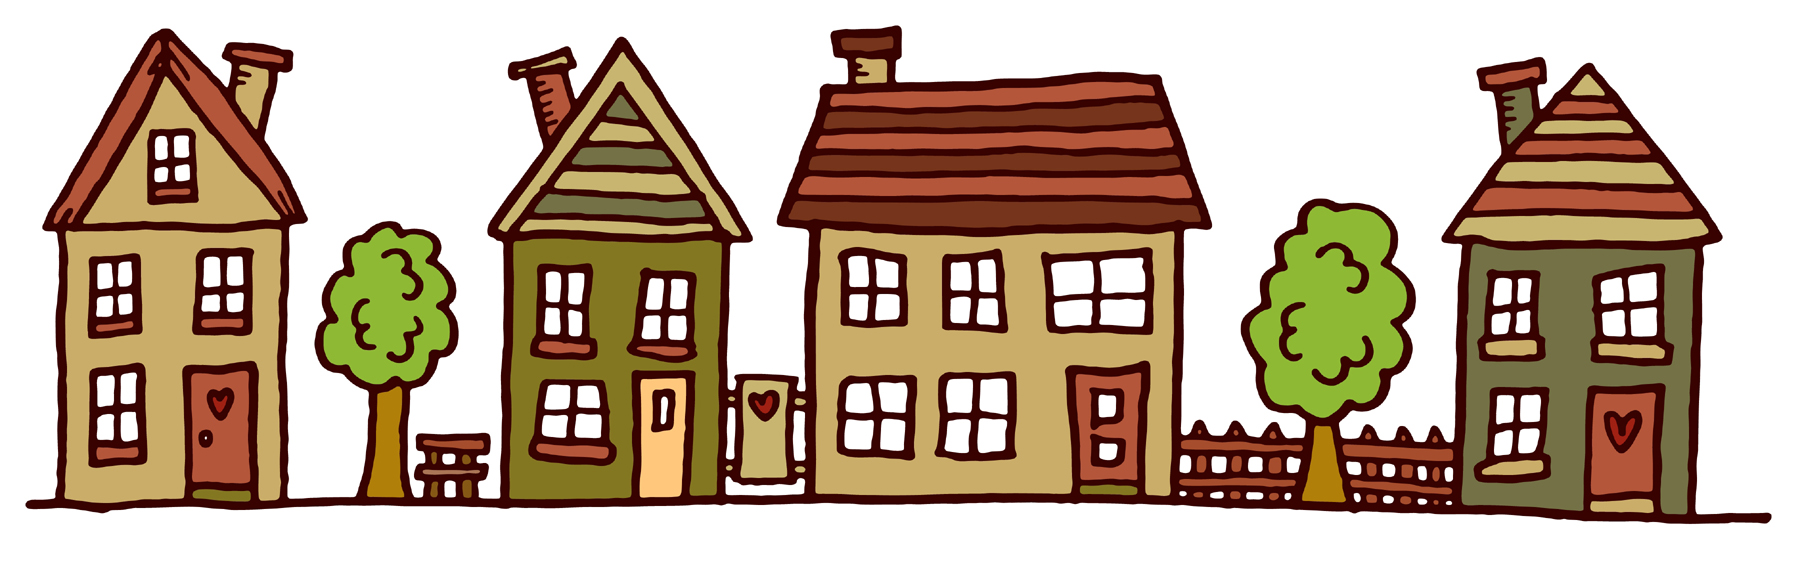 30 images of houses in a row  Free cliparts that you can download to